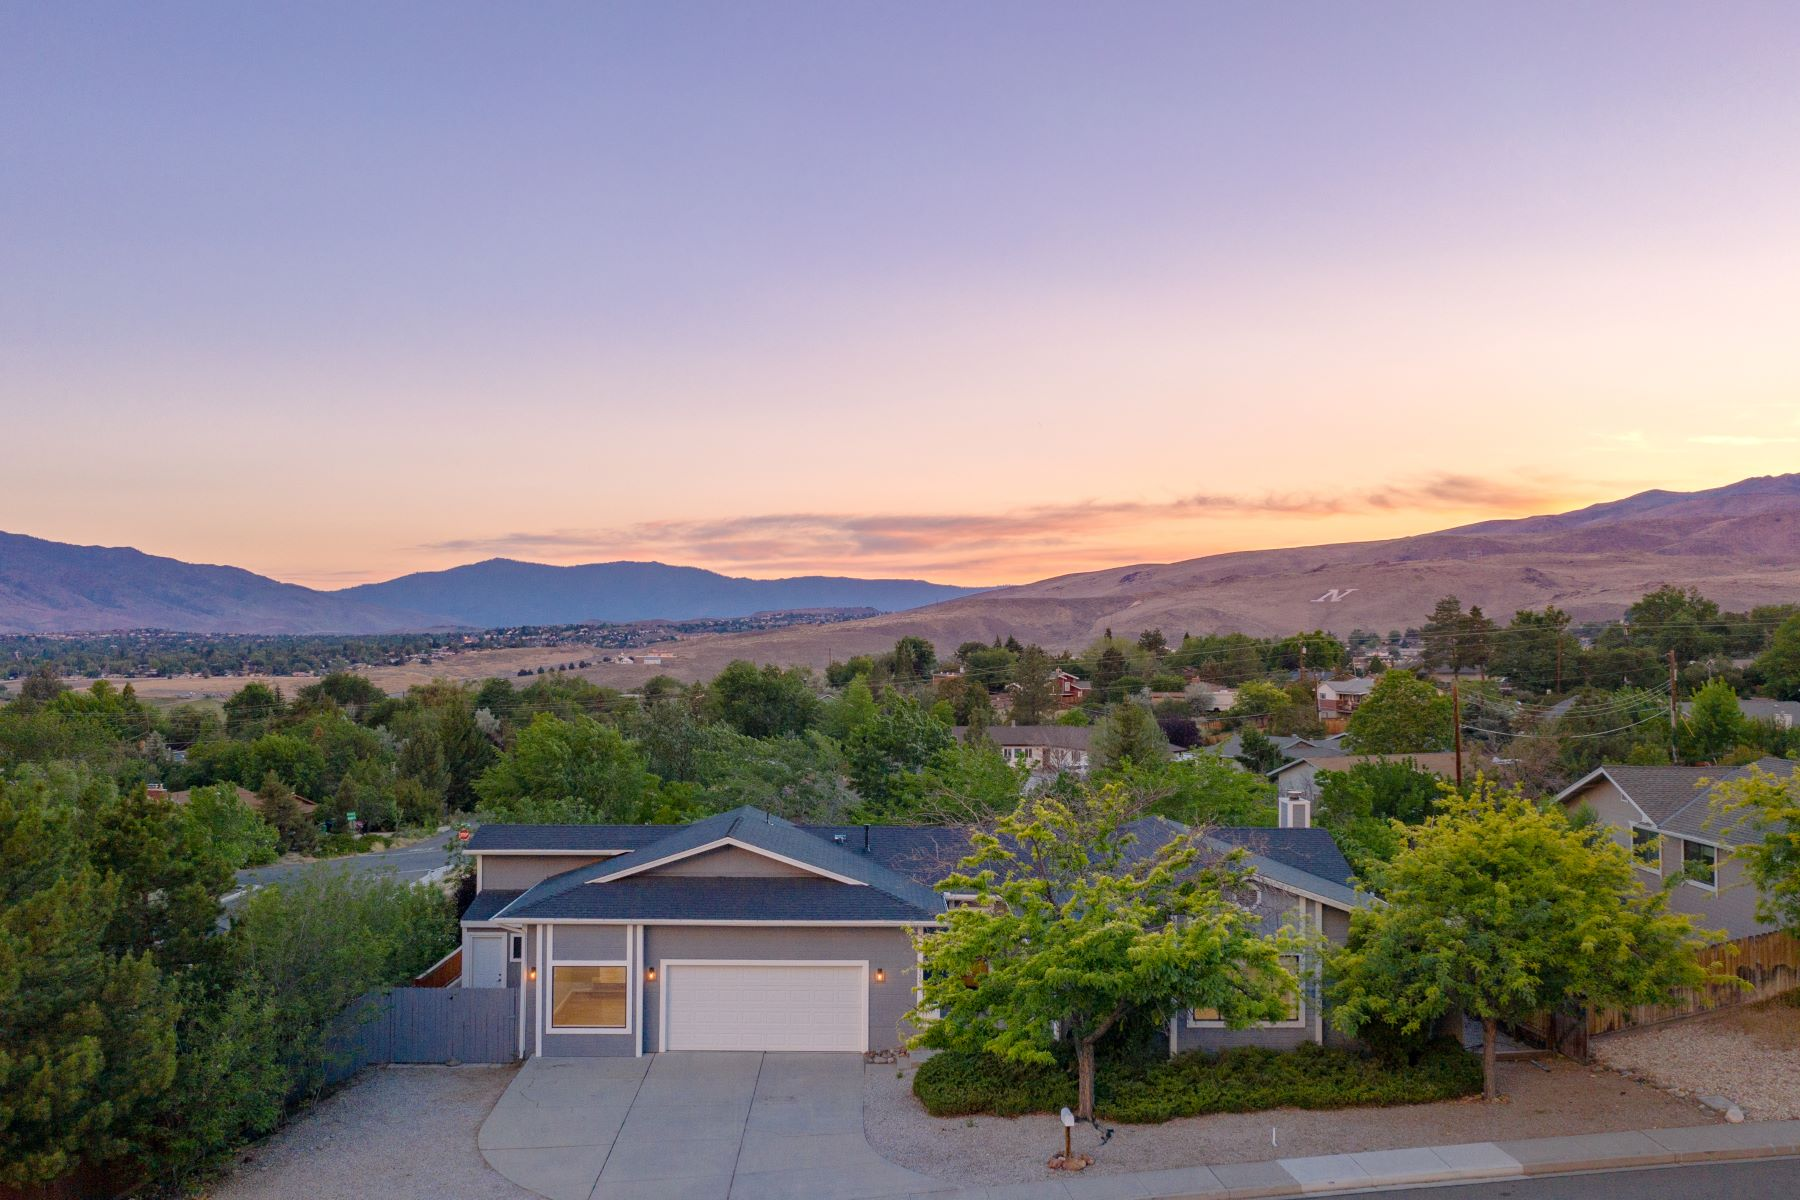 Property for Active at Views of the City Lights and Sierra 3325 Socrates Drive Reno, Nevada 89512 United States